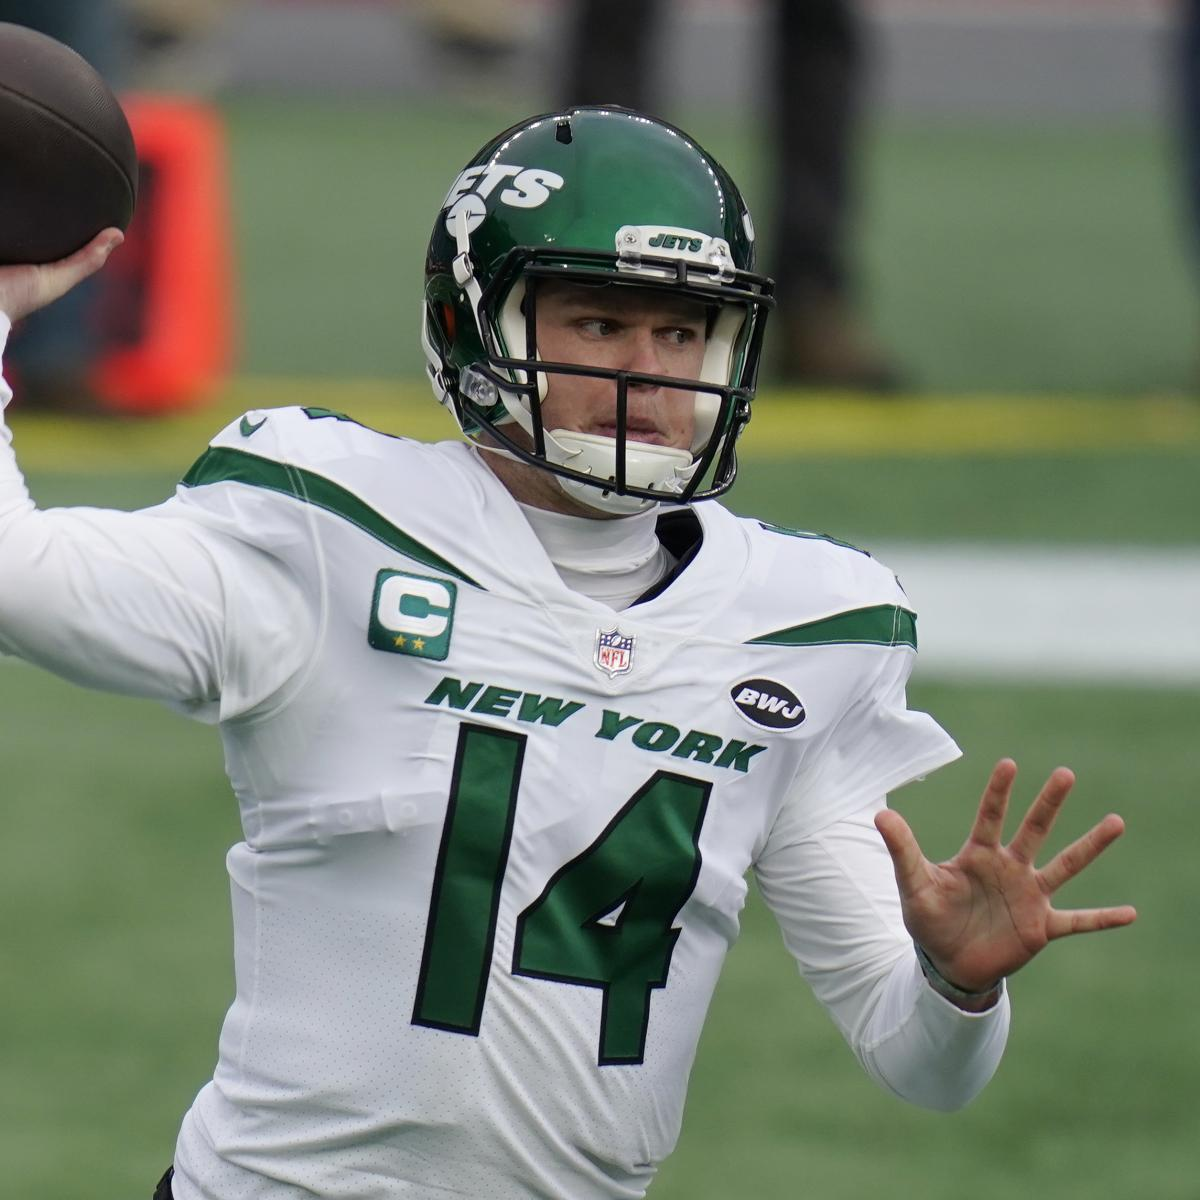 Report: Sam Darnold Still 'Realistic' Option for Jets in 2021 Amid Trade Rumors